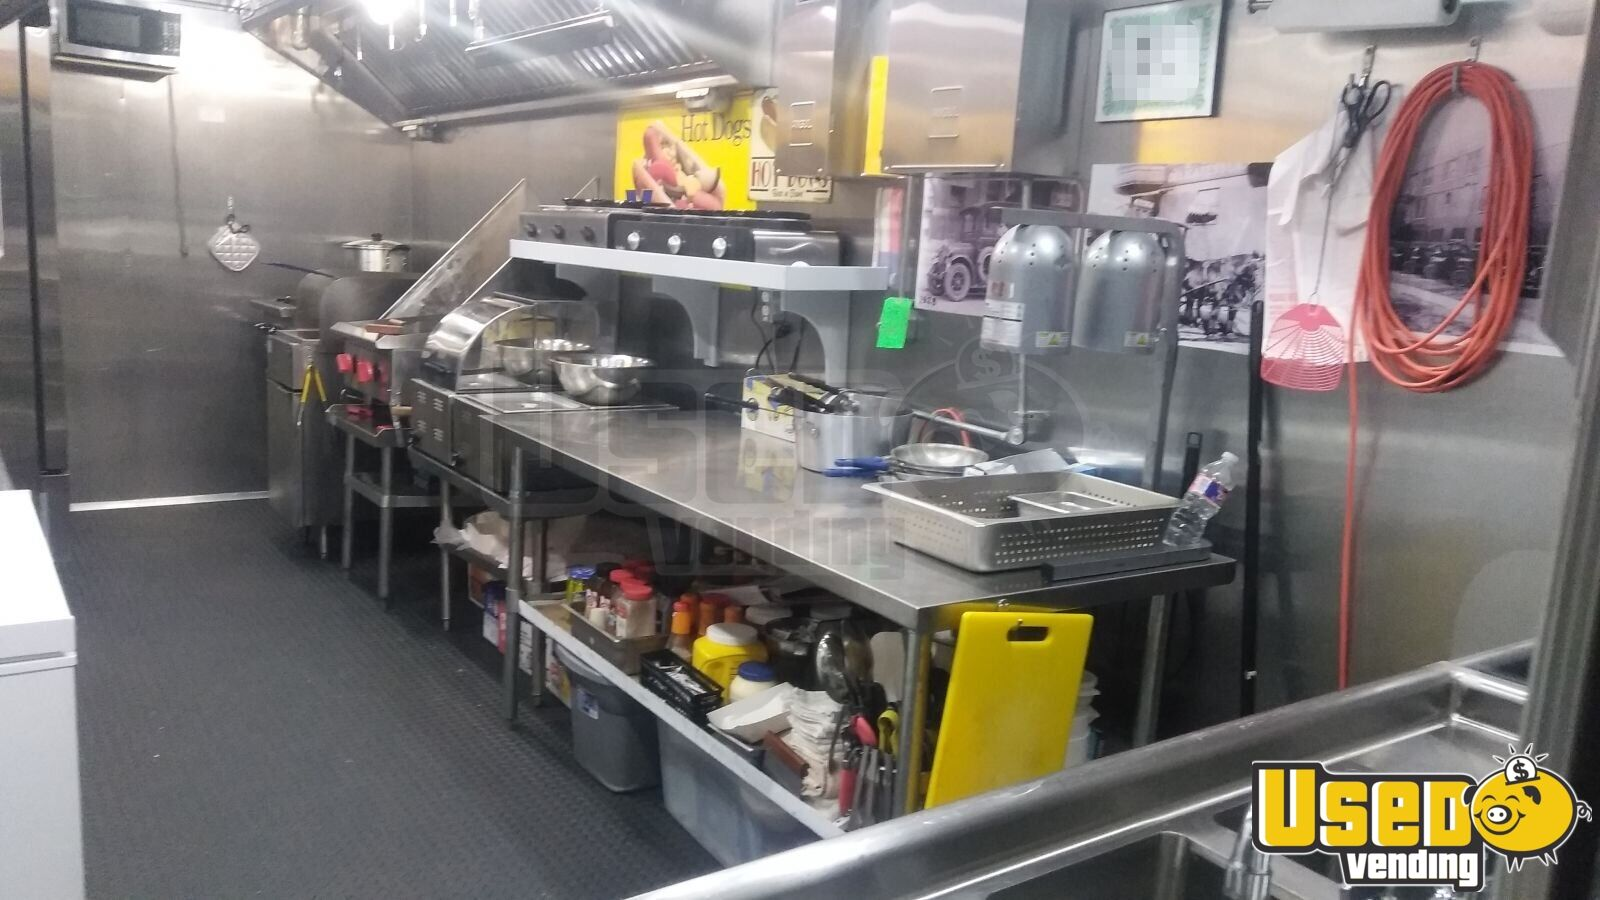 2018 Food Concession Trailer Kitchen Food Trailer Stainless Steel Wall Covers Texas for Sale - 5